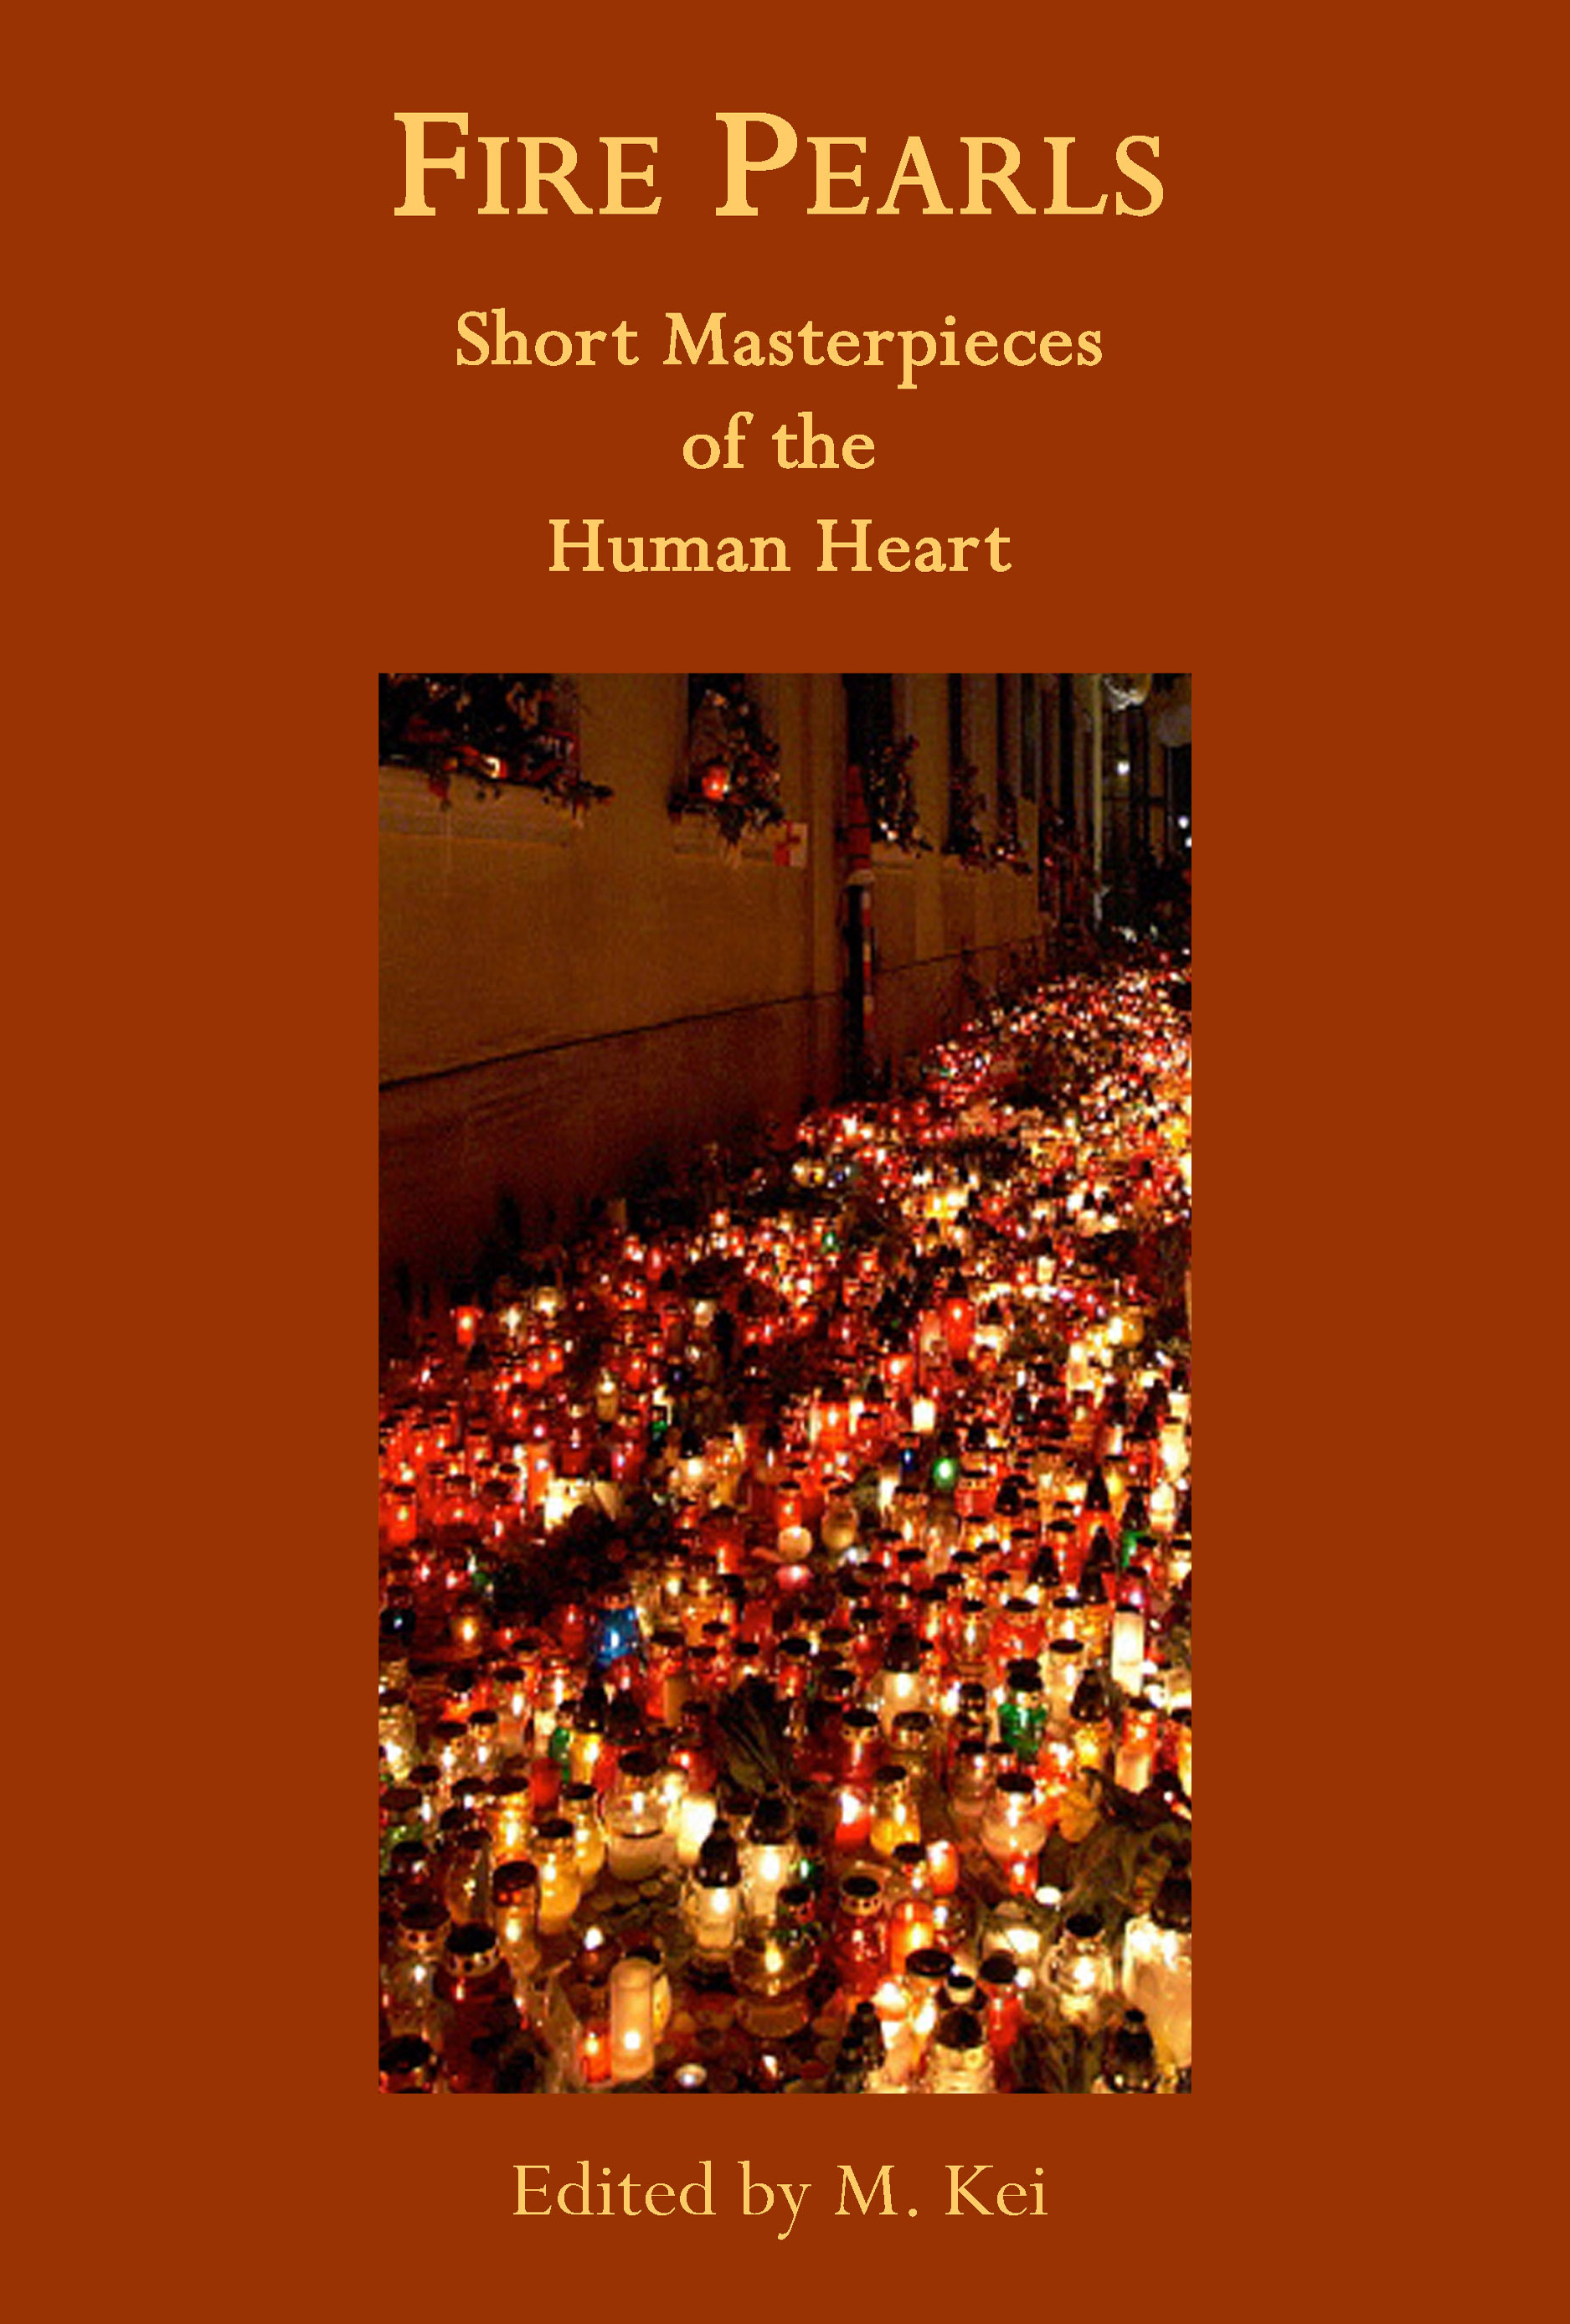 Fire Peals Short Masterpieces of the Human Heart edited by M Kei tanka poetry